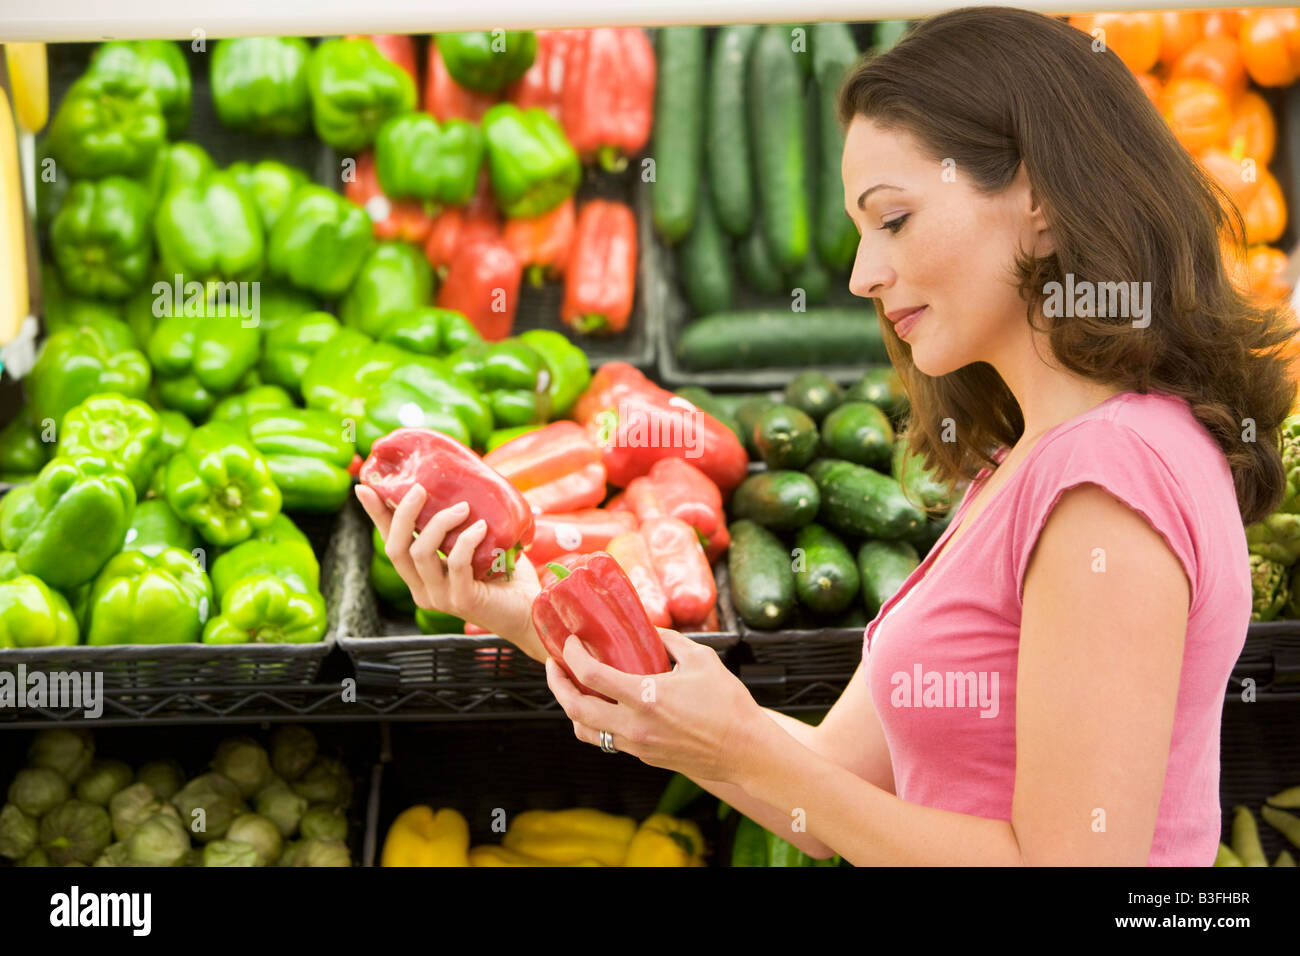 Woman shopping for bell peppers at a grocery store - Stock Image